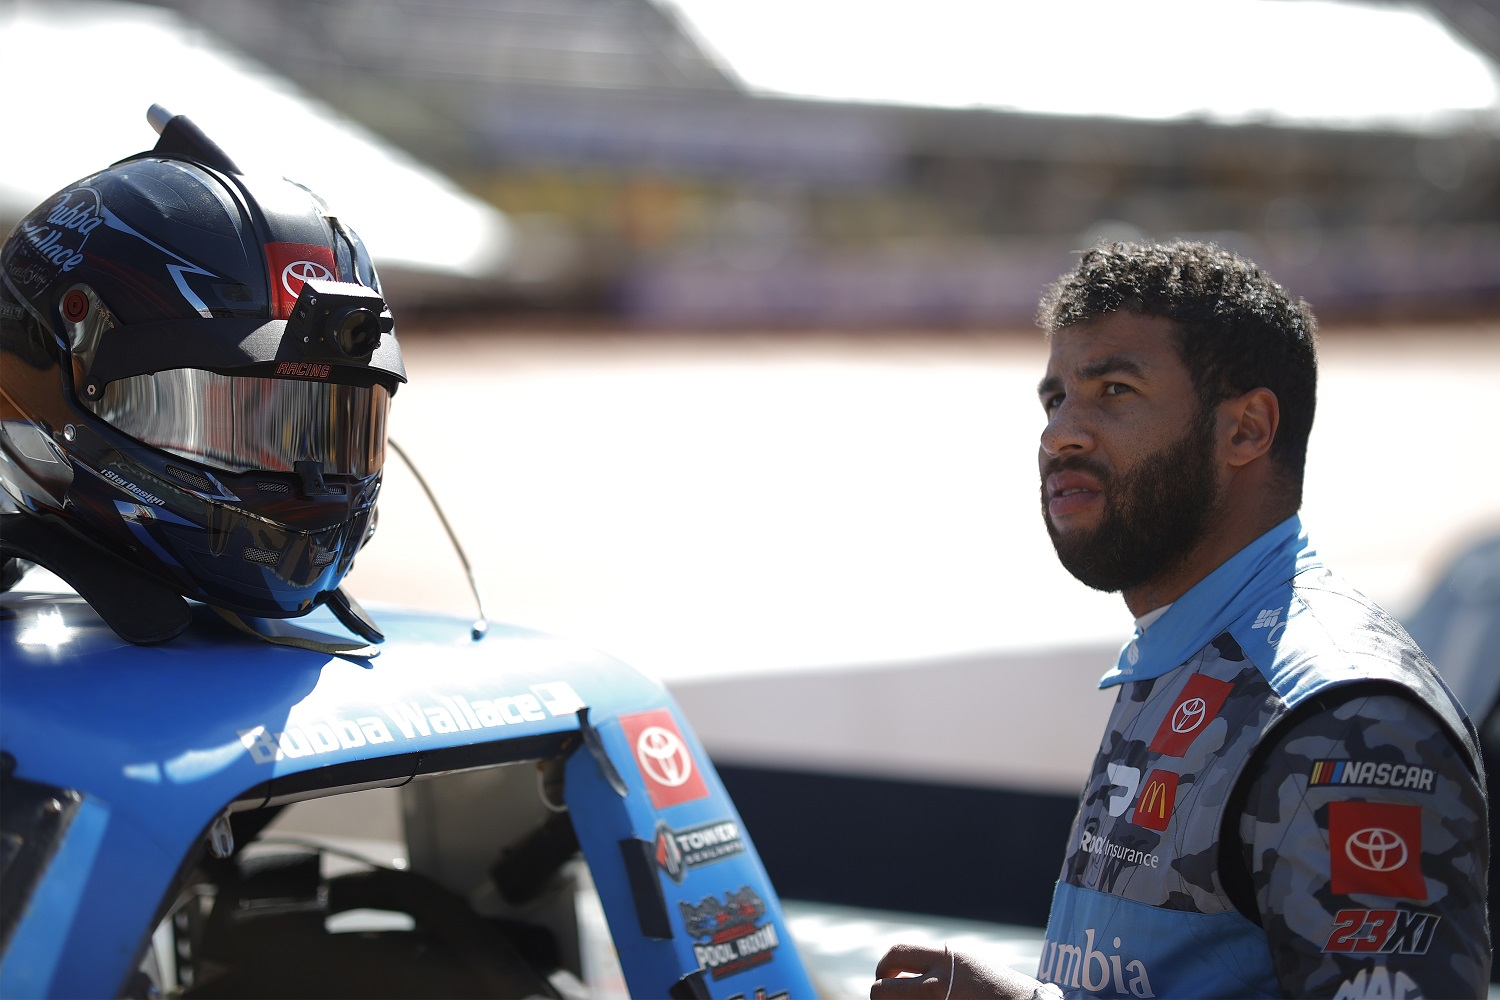 Bubba Wallace has not finished in the top 15 of a NASCAR Cup Series rave through seven events in the 2021 schedule.